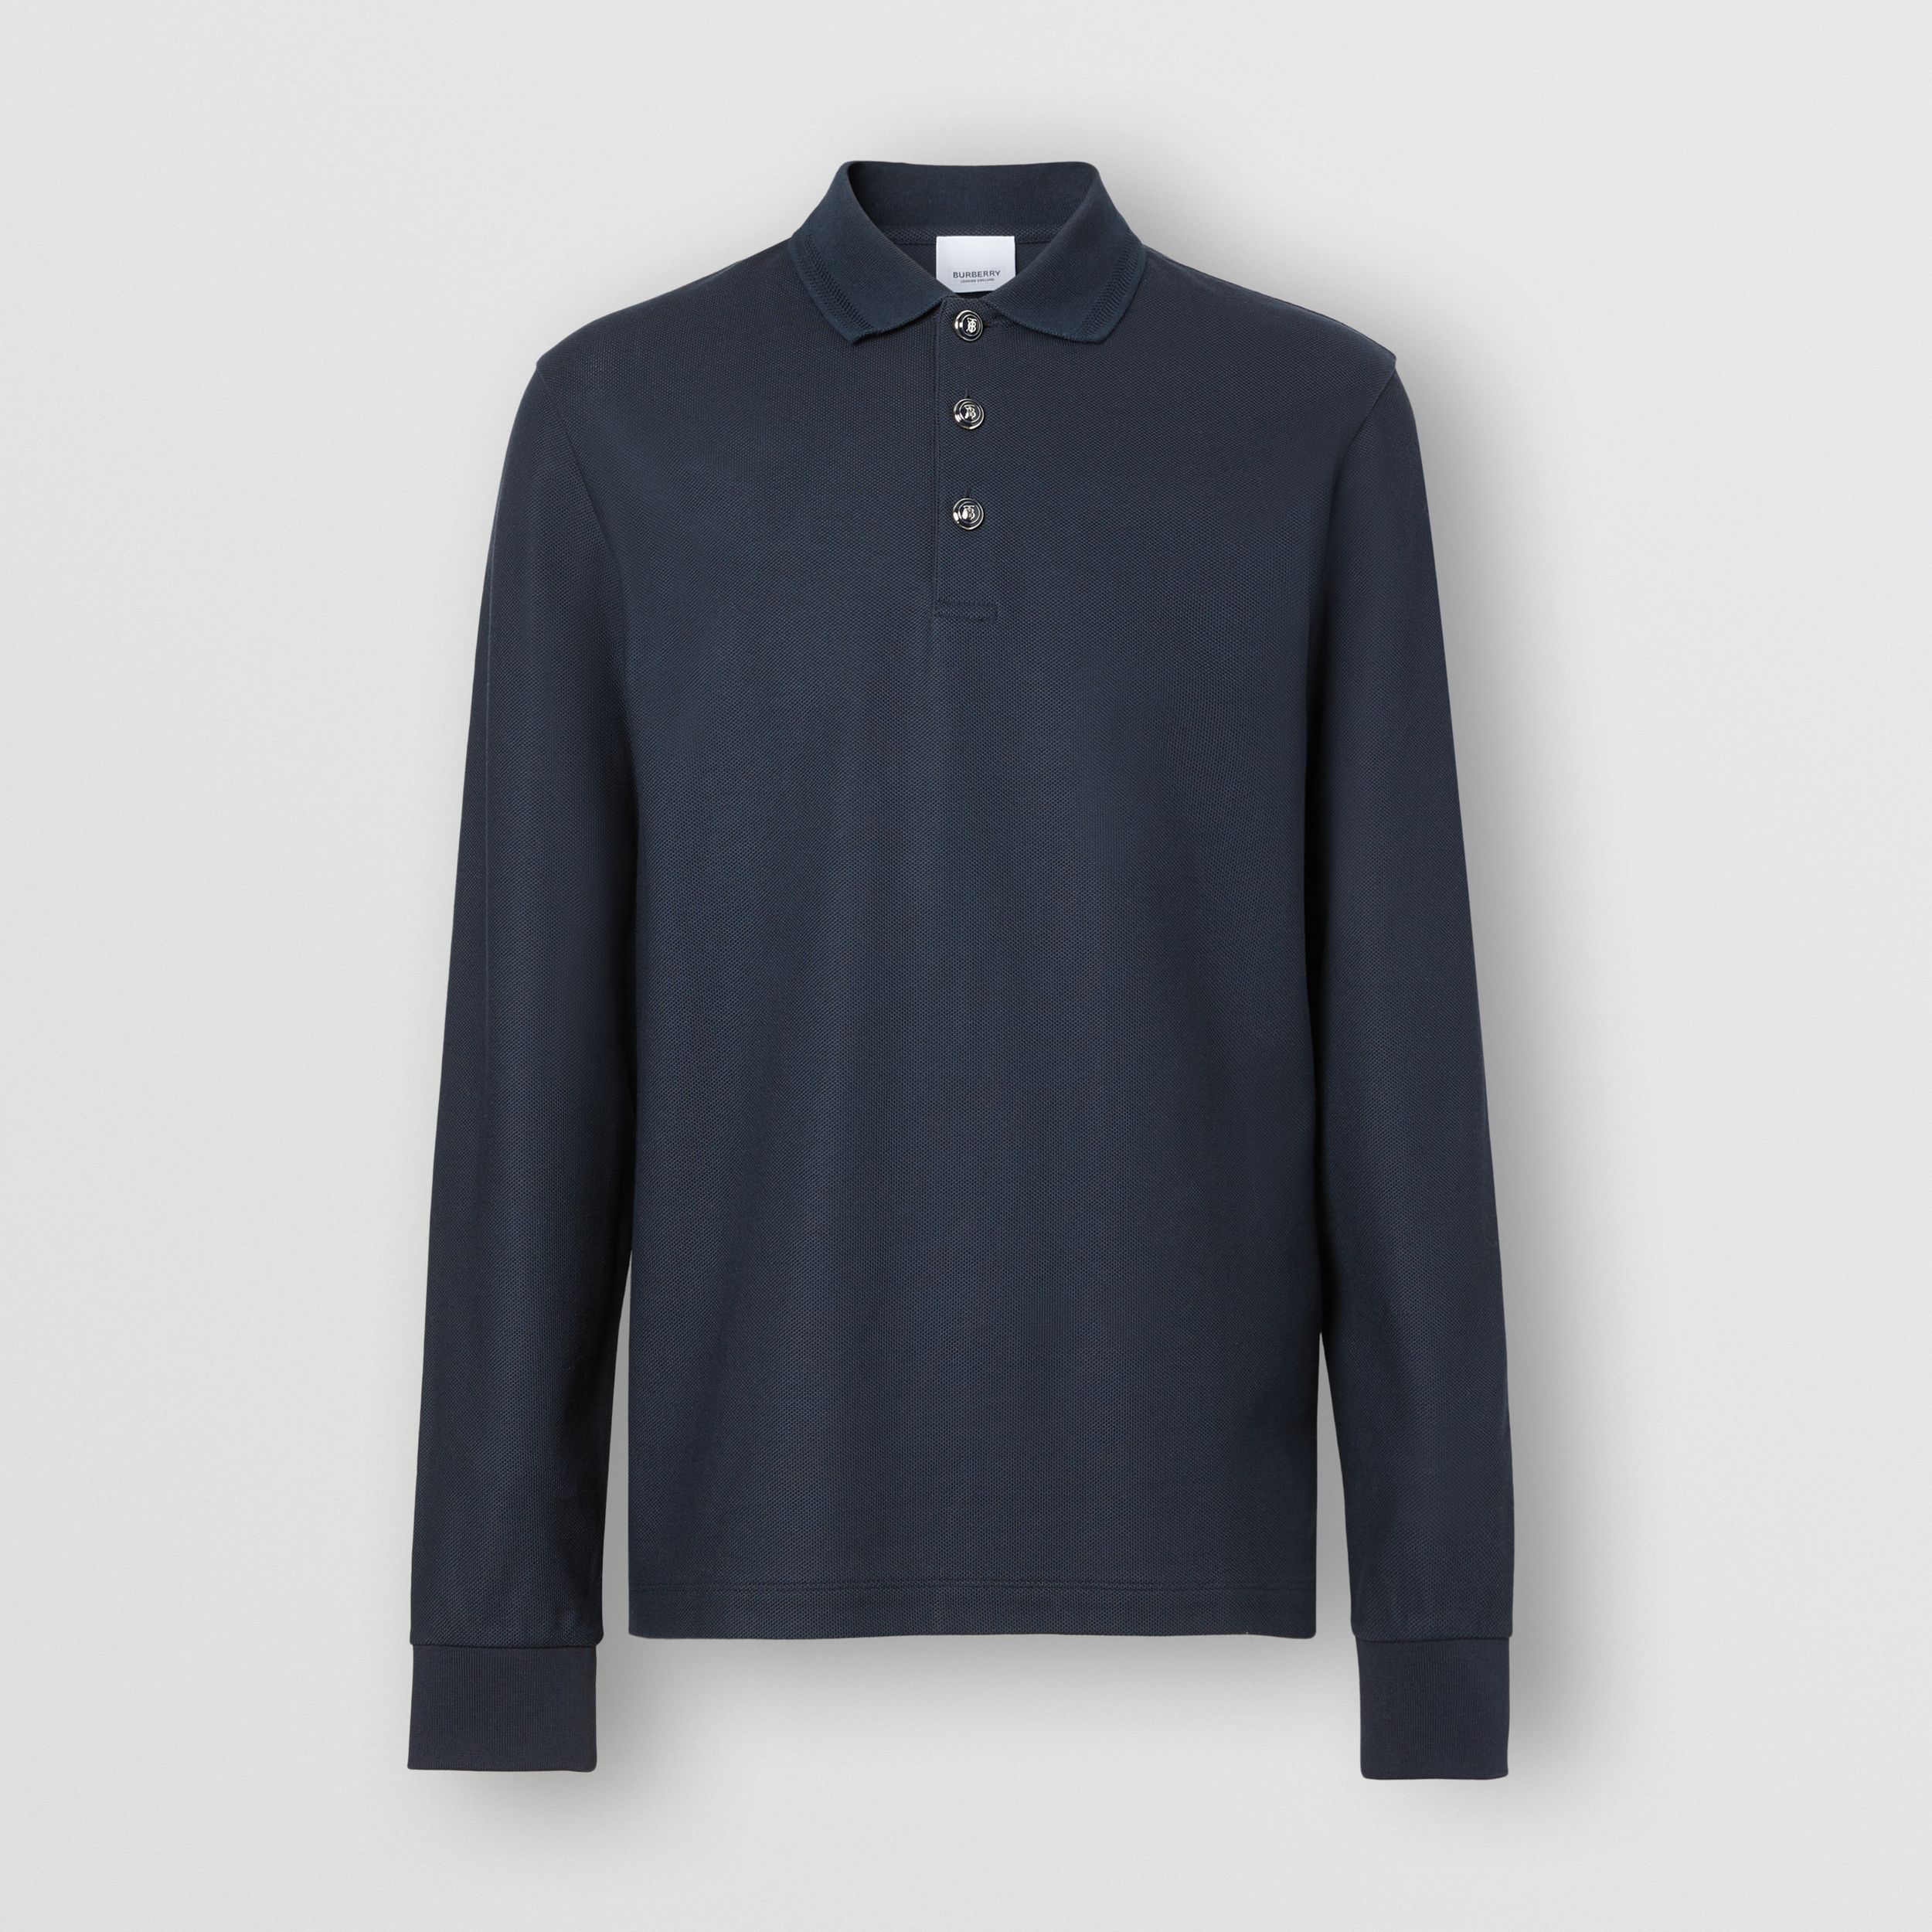 Long-sleeve Cotton Piqué Polo Shirt in Navy - Men | Burberry Canada - 4